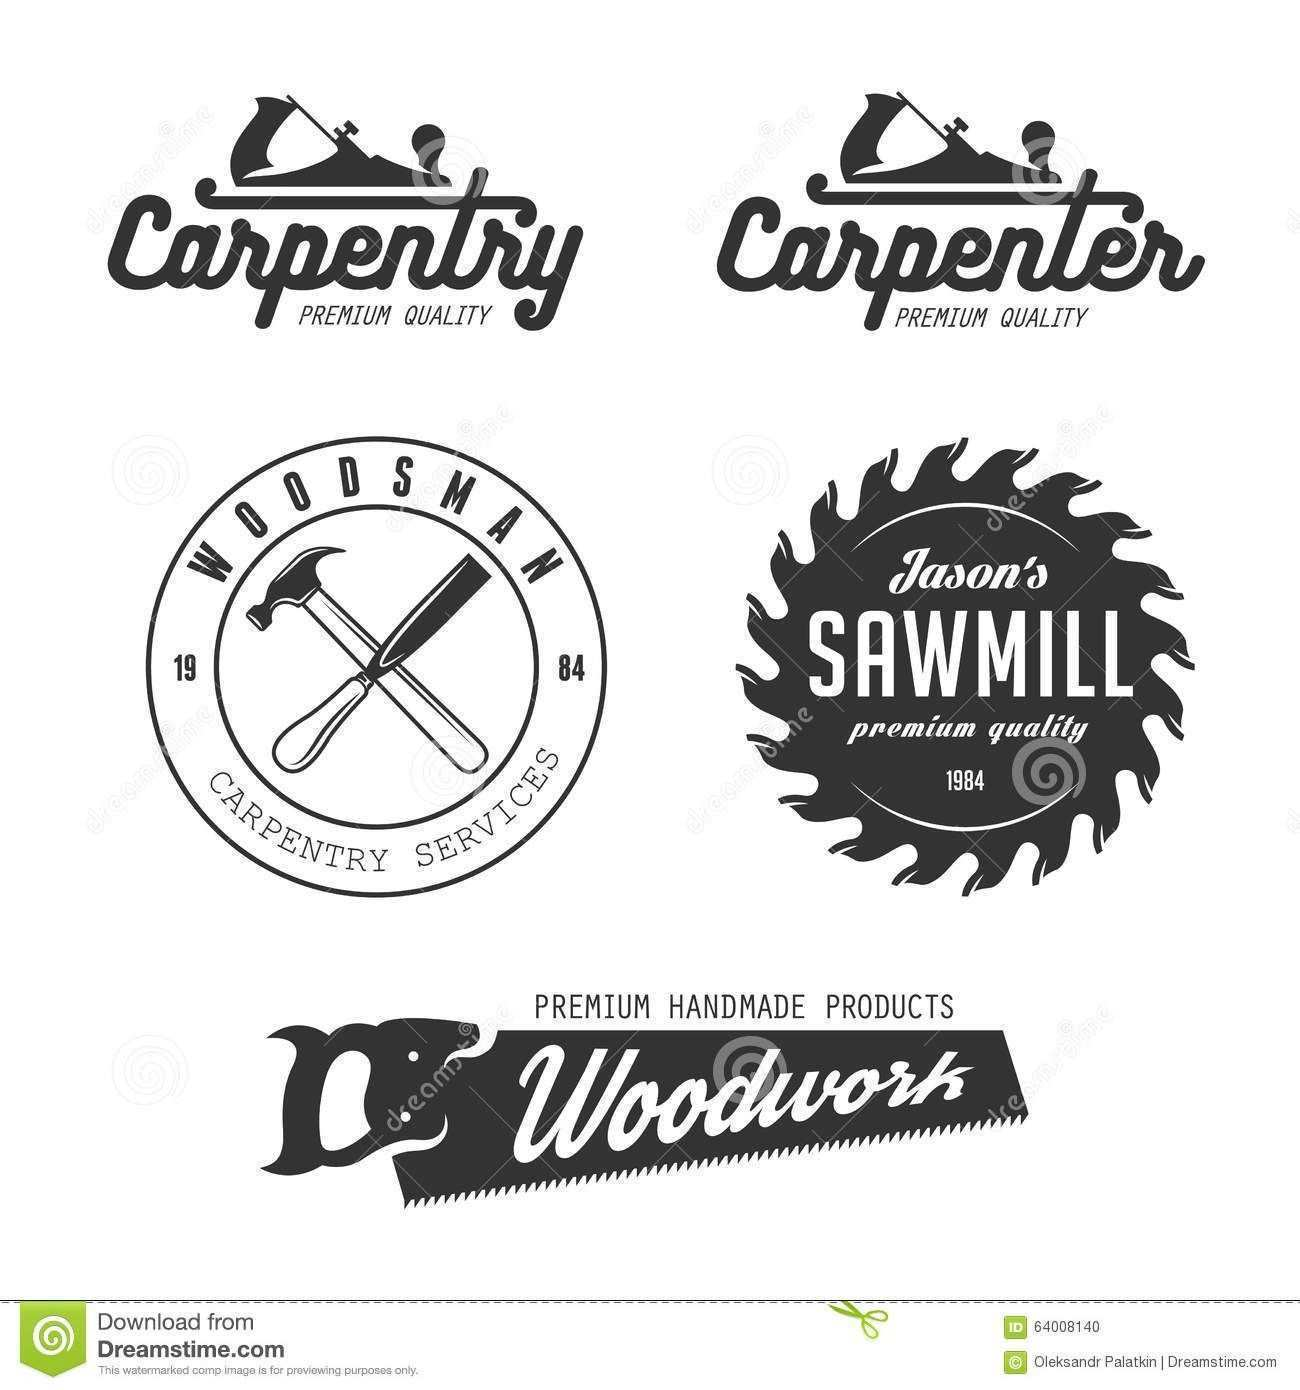 3 Connected Cool Tips Handmade Woodworking Tools Simple Handmade Woodworking Tools Thoughts Woodworking Carpentry Woodworking Logo Essential Woodworking Tools